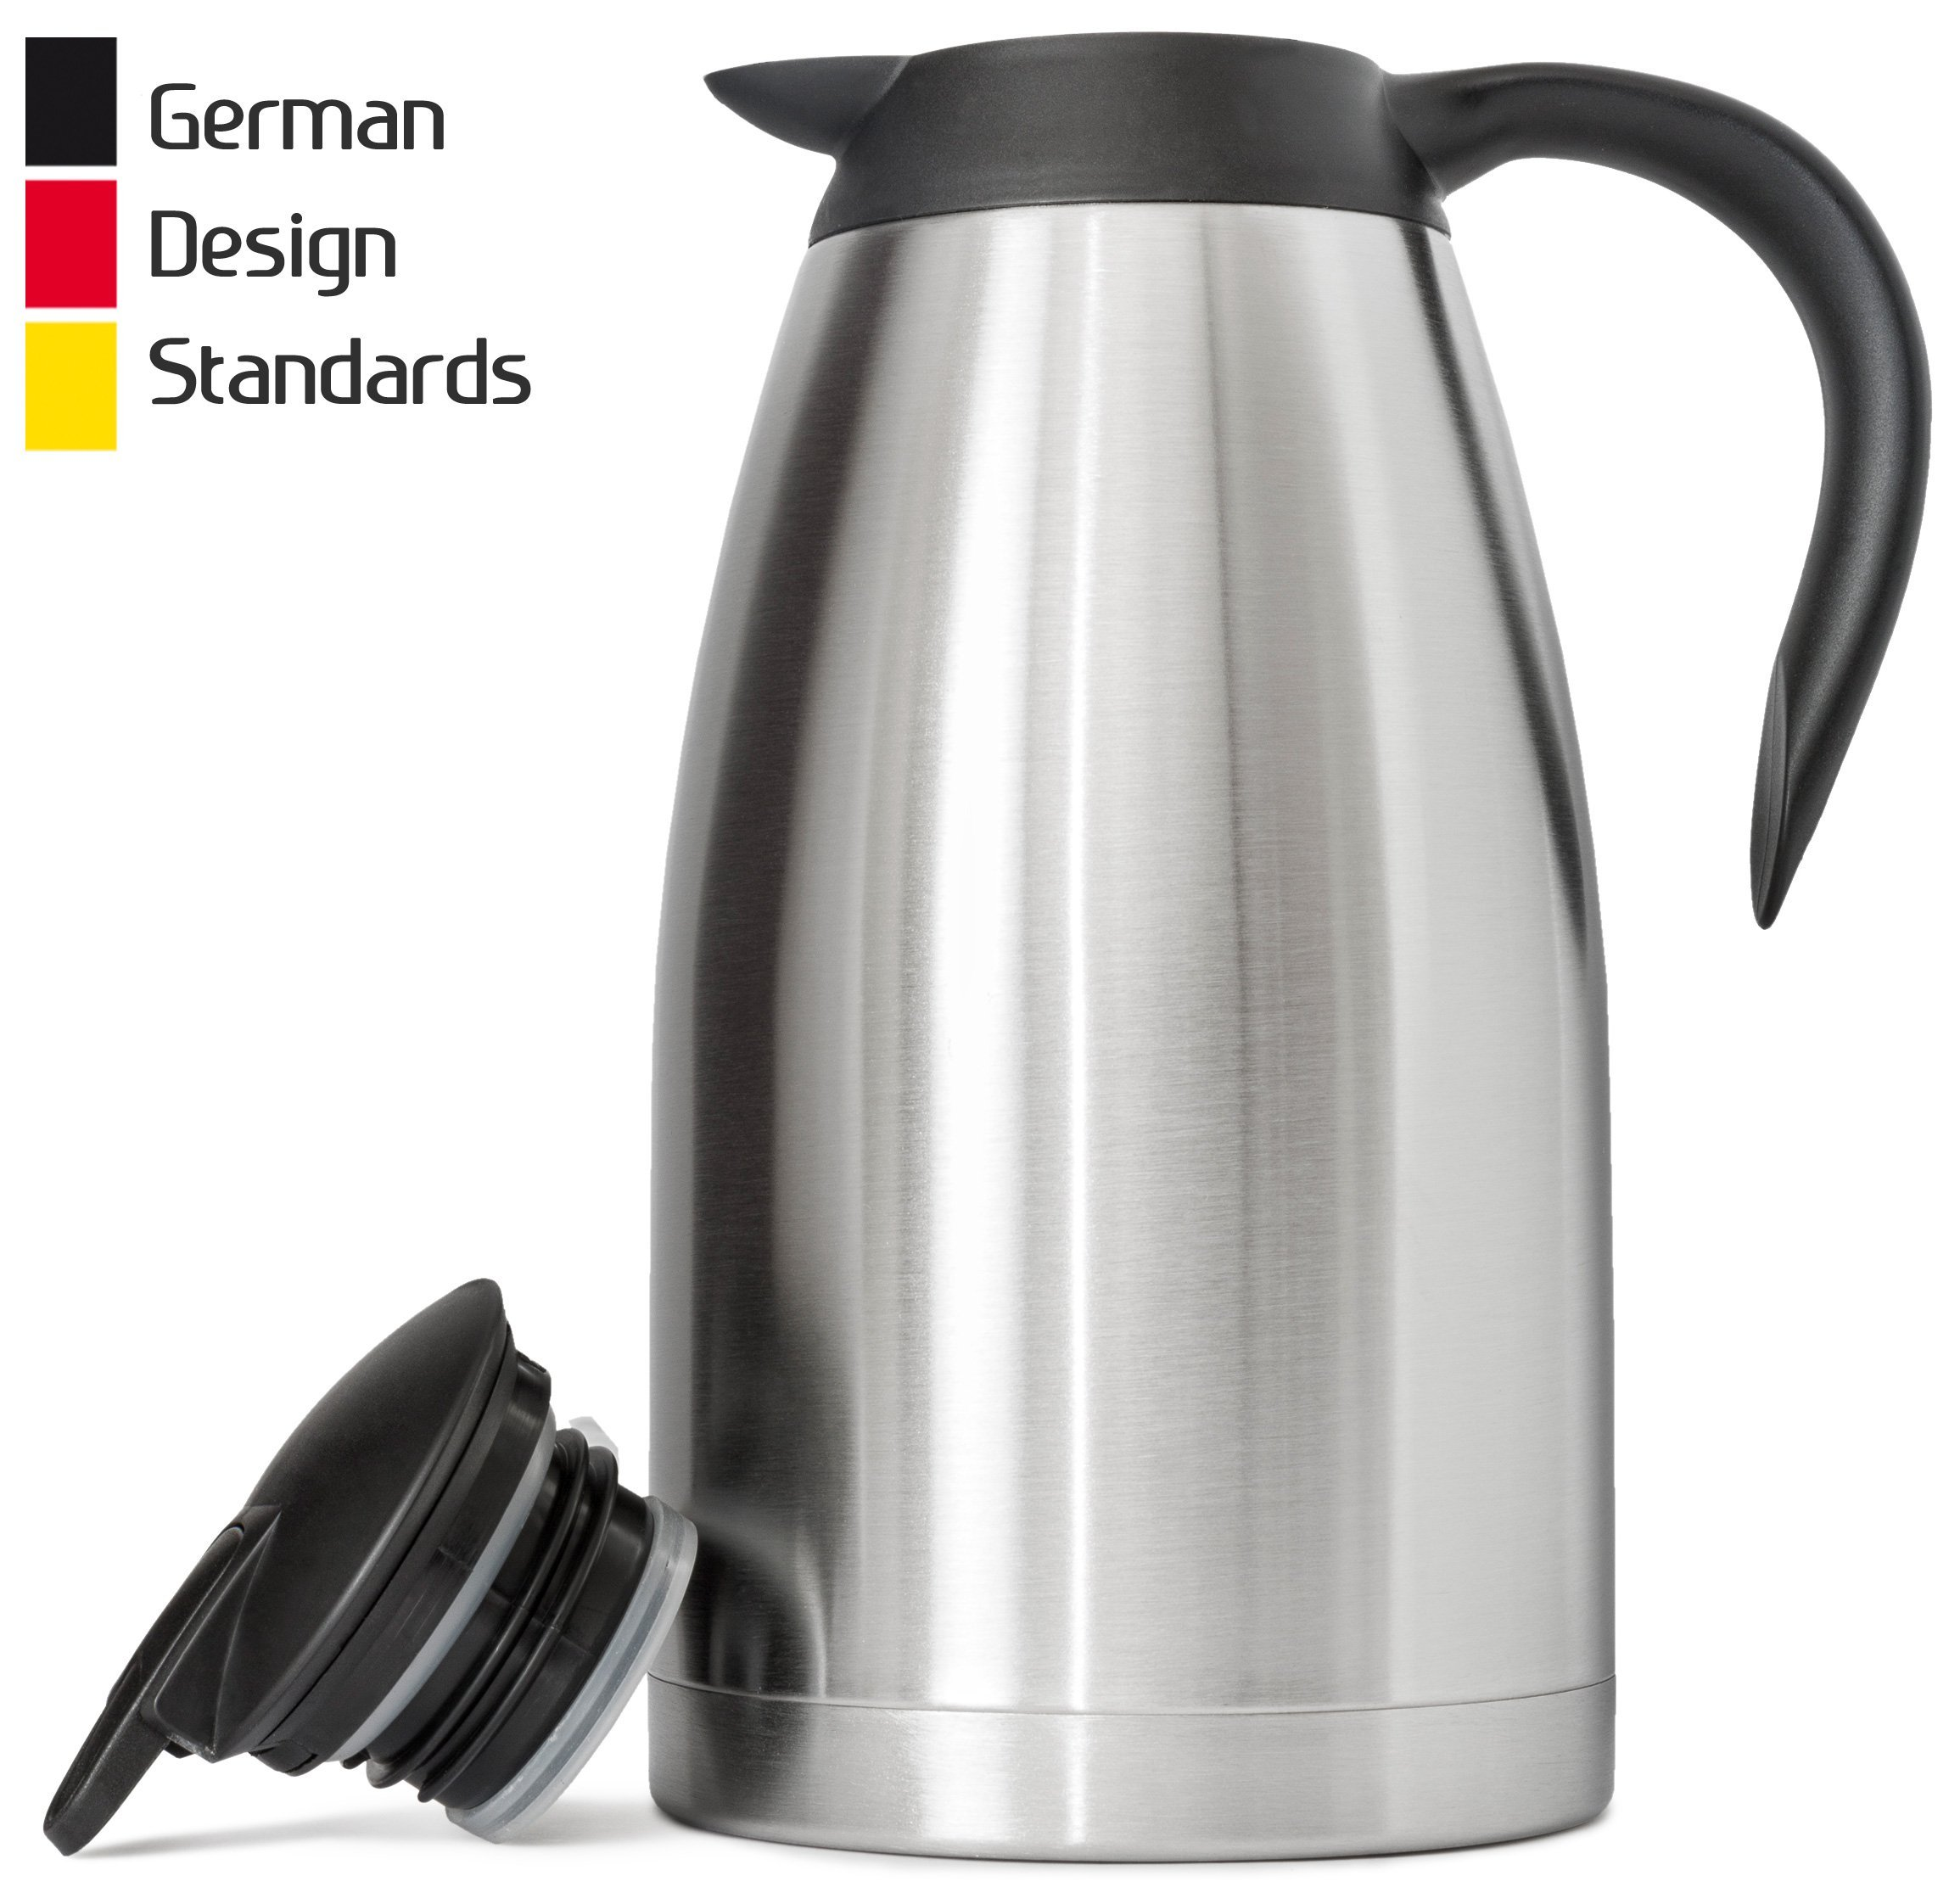 [47% OFF - Ends Aug 26] New 68 Oz (2 Liter) German-Designed Thermal Coffee Carafe/Stainless Steel Insulated Double Wall/BPA-Free Vacuum Thermos/Up to 12-Hrs Heat & 24-Hrs Cold Retention